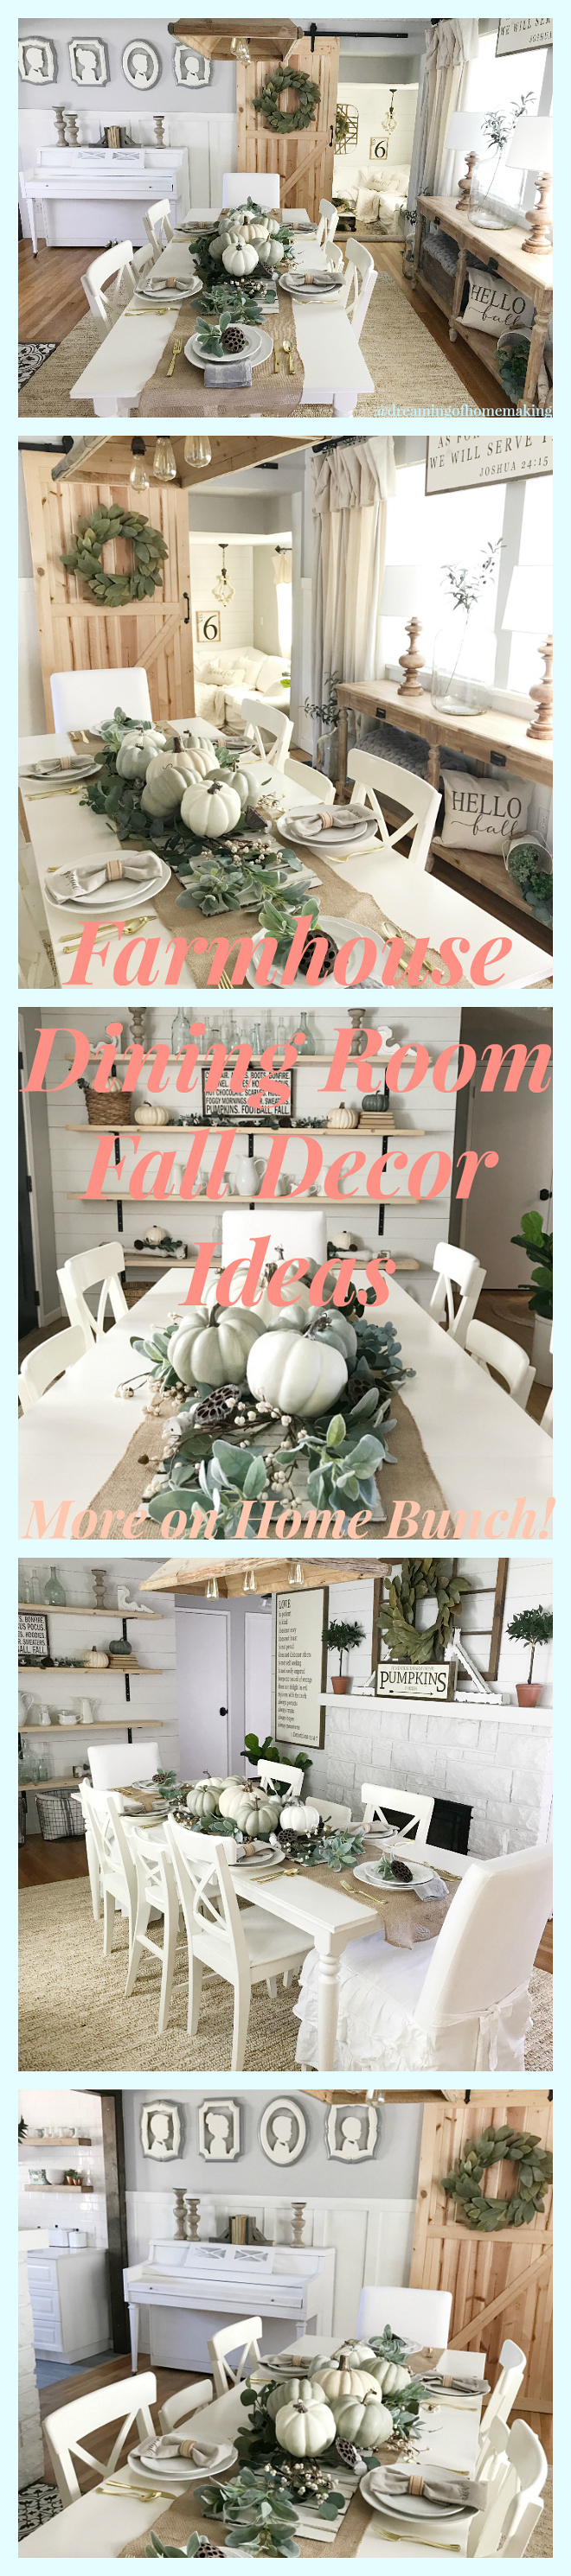 Farmhouse Dining room Fall decor ideas. Farmhouse Dining room Fall decor. Farmhouse Fall decor #FarmhouseFalldecor #Farmhouse #Falldecor #fall Home Bunch